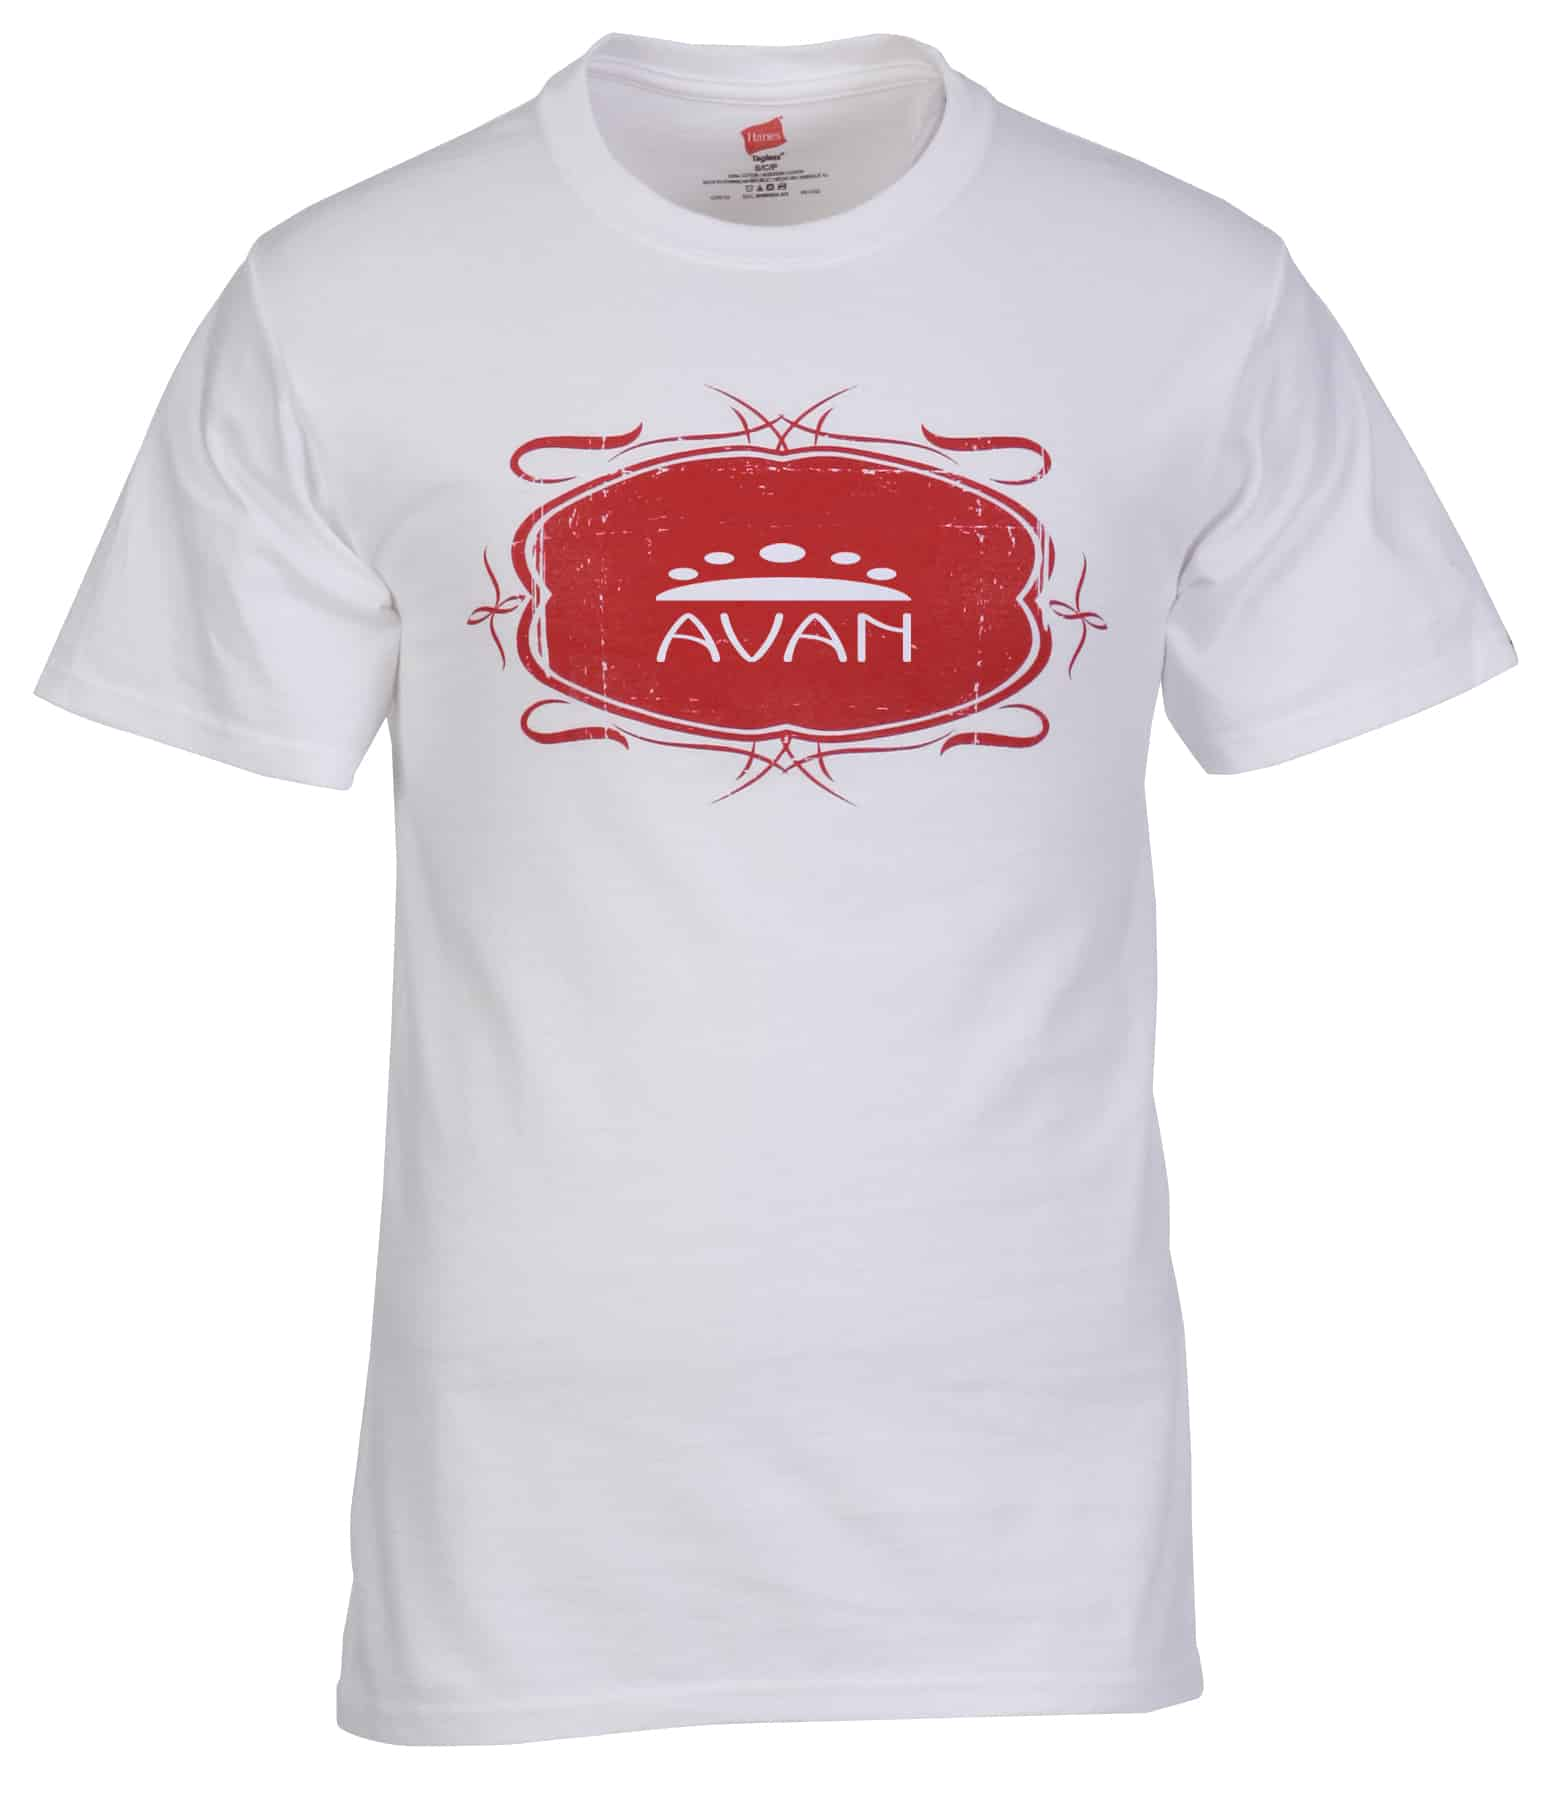 A white Hanes Authentic T-Shirt with Vintage Design.